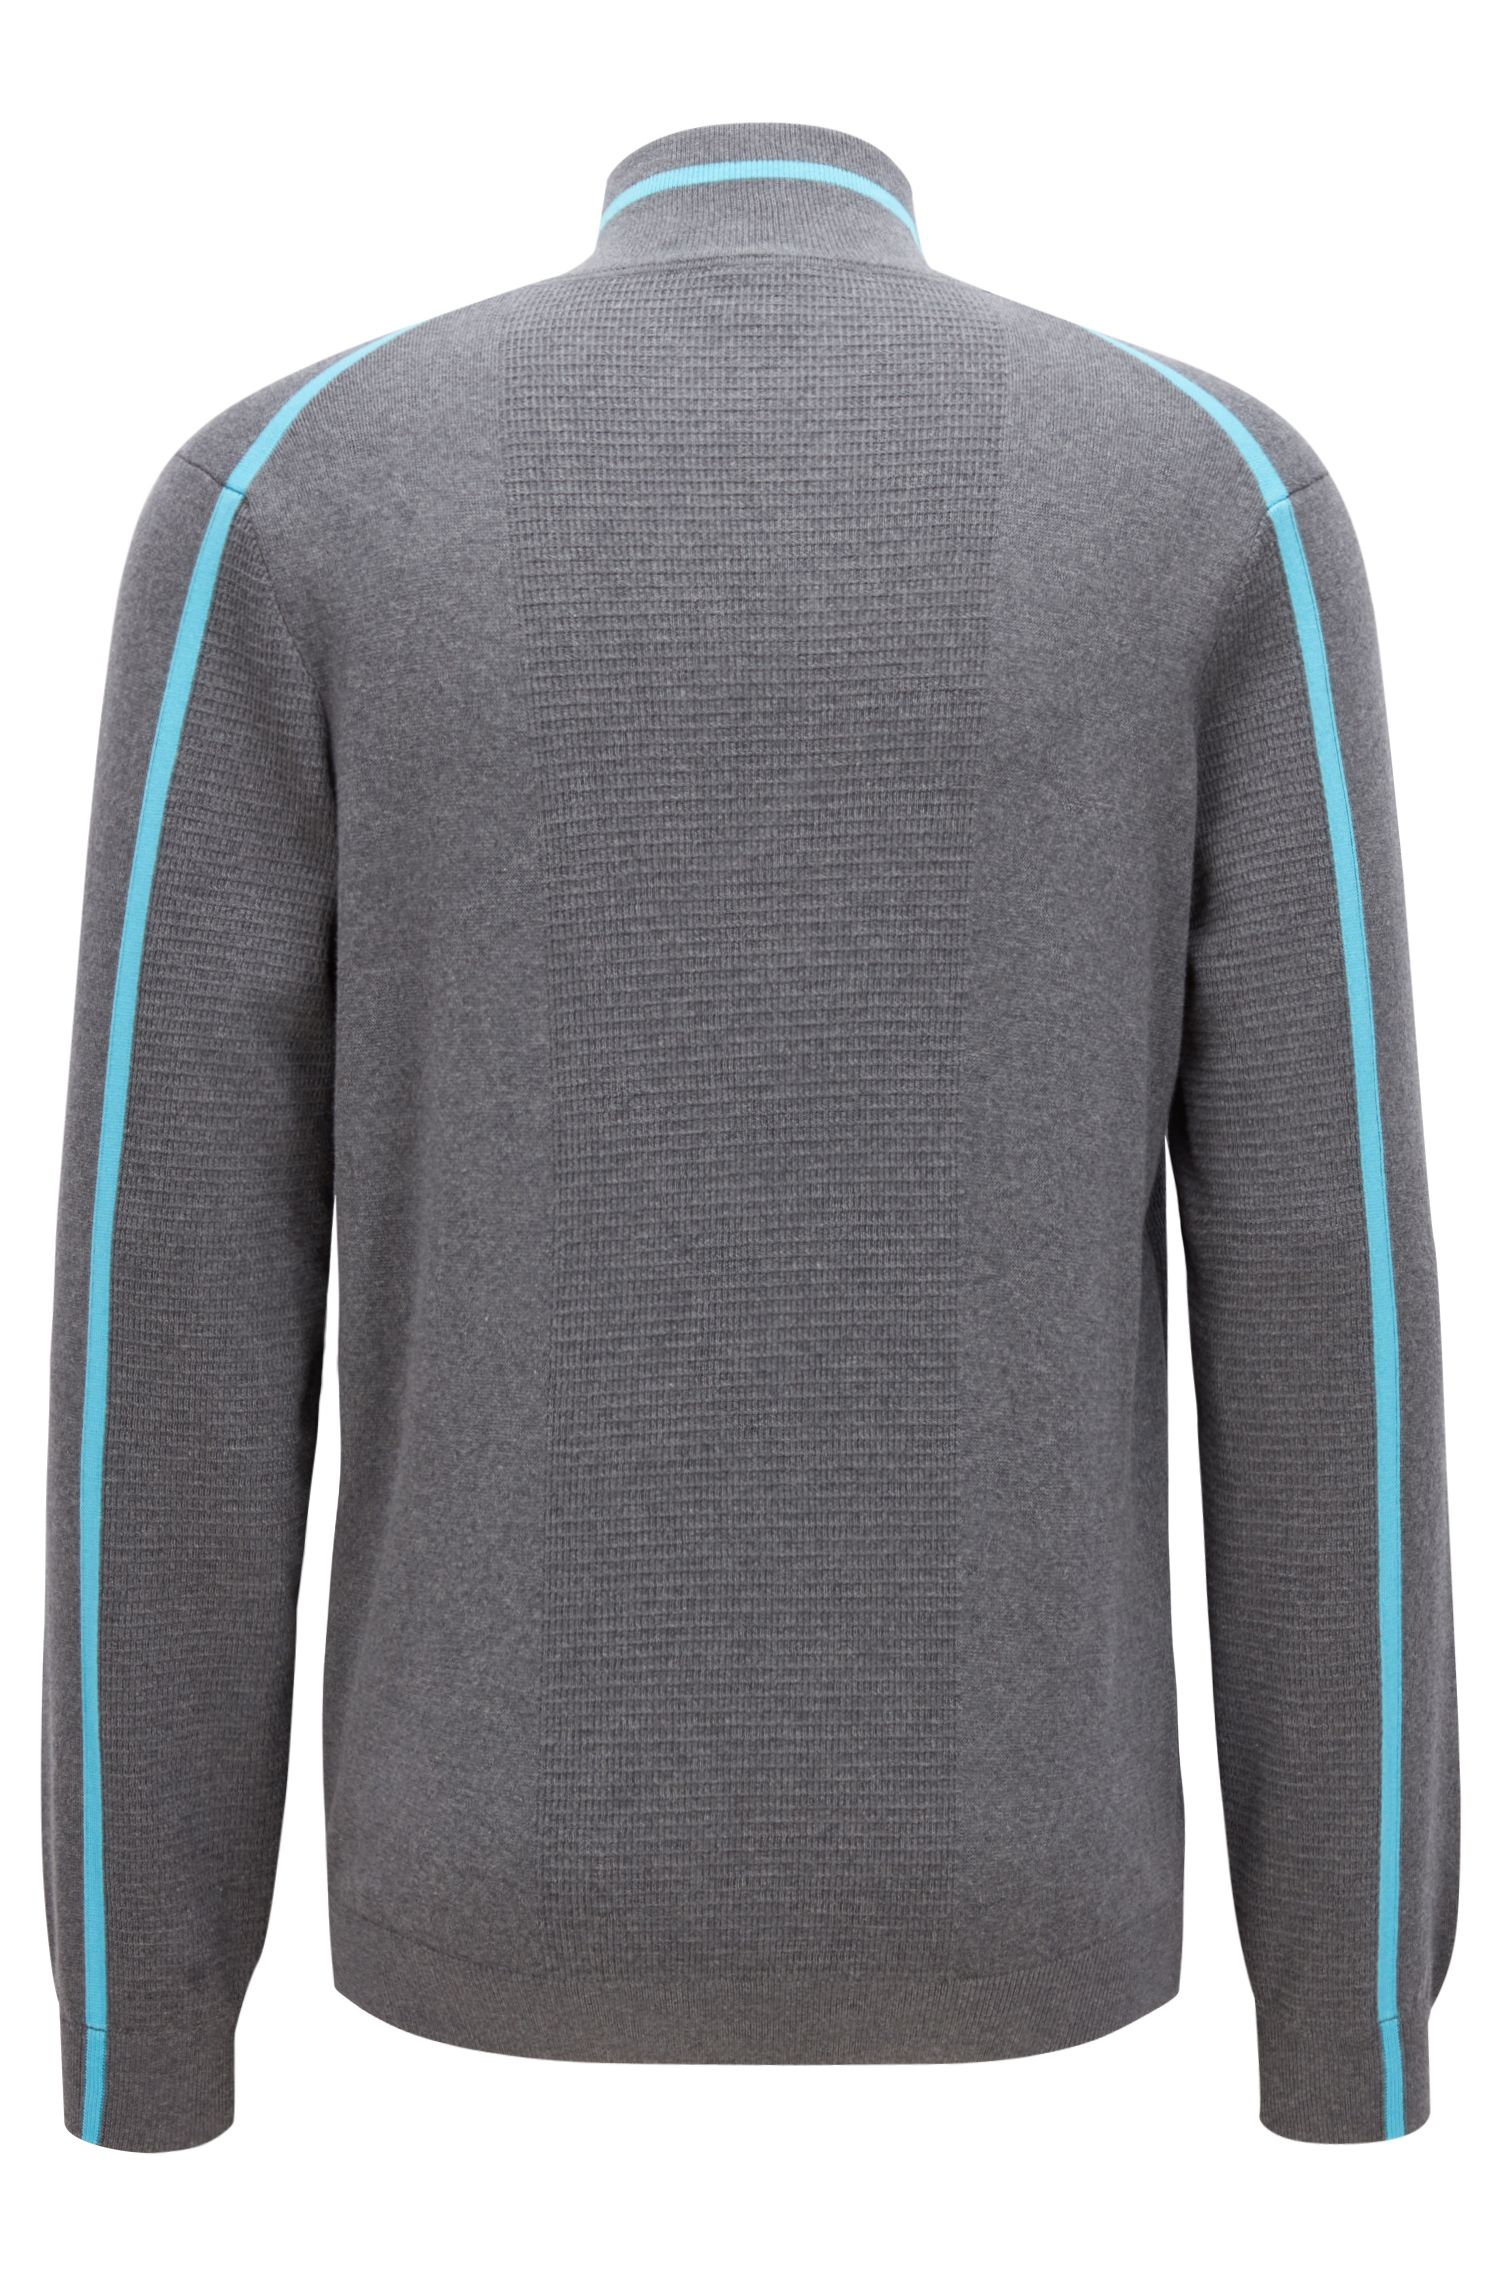 Zipper-neck sweater in an organic-cotton blend, Grey